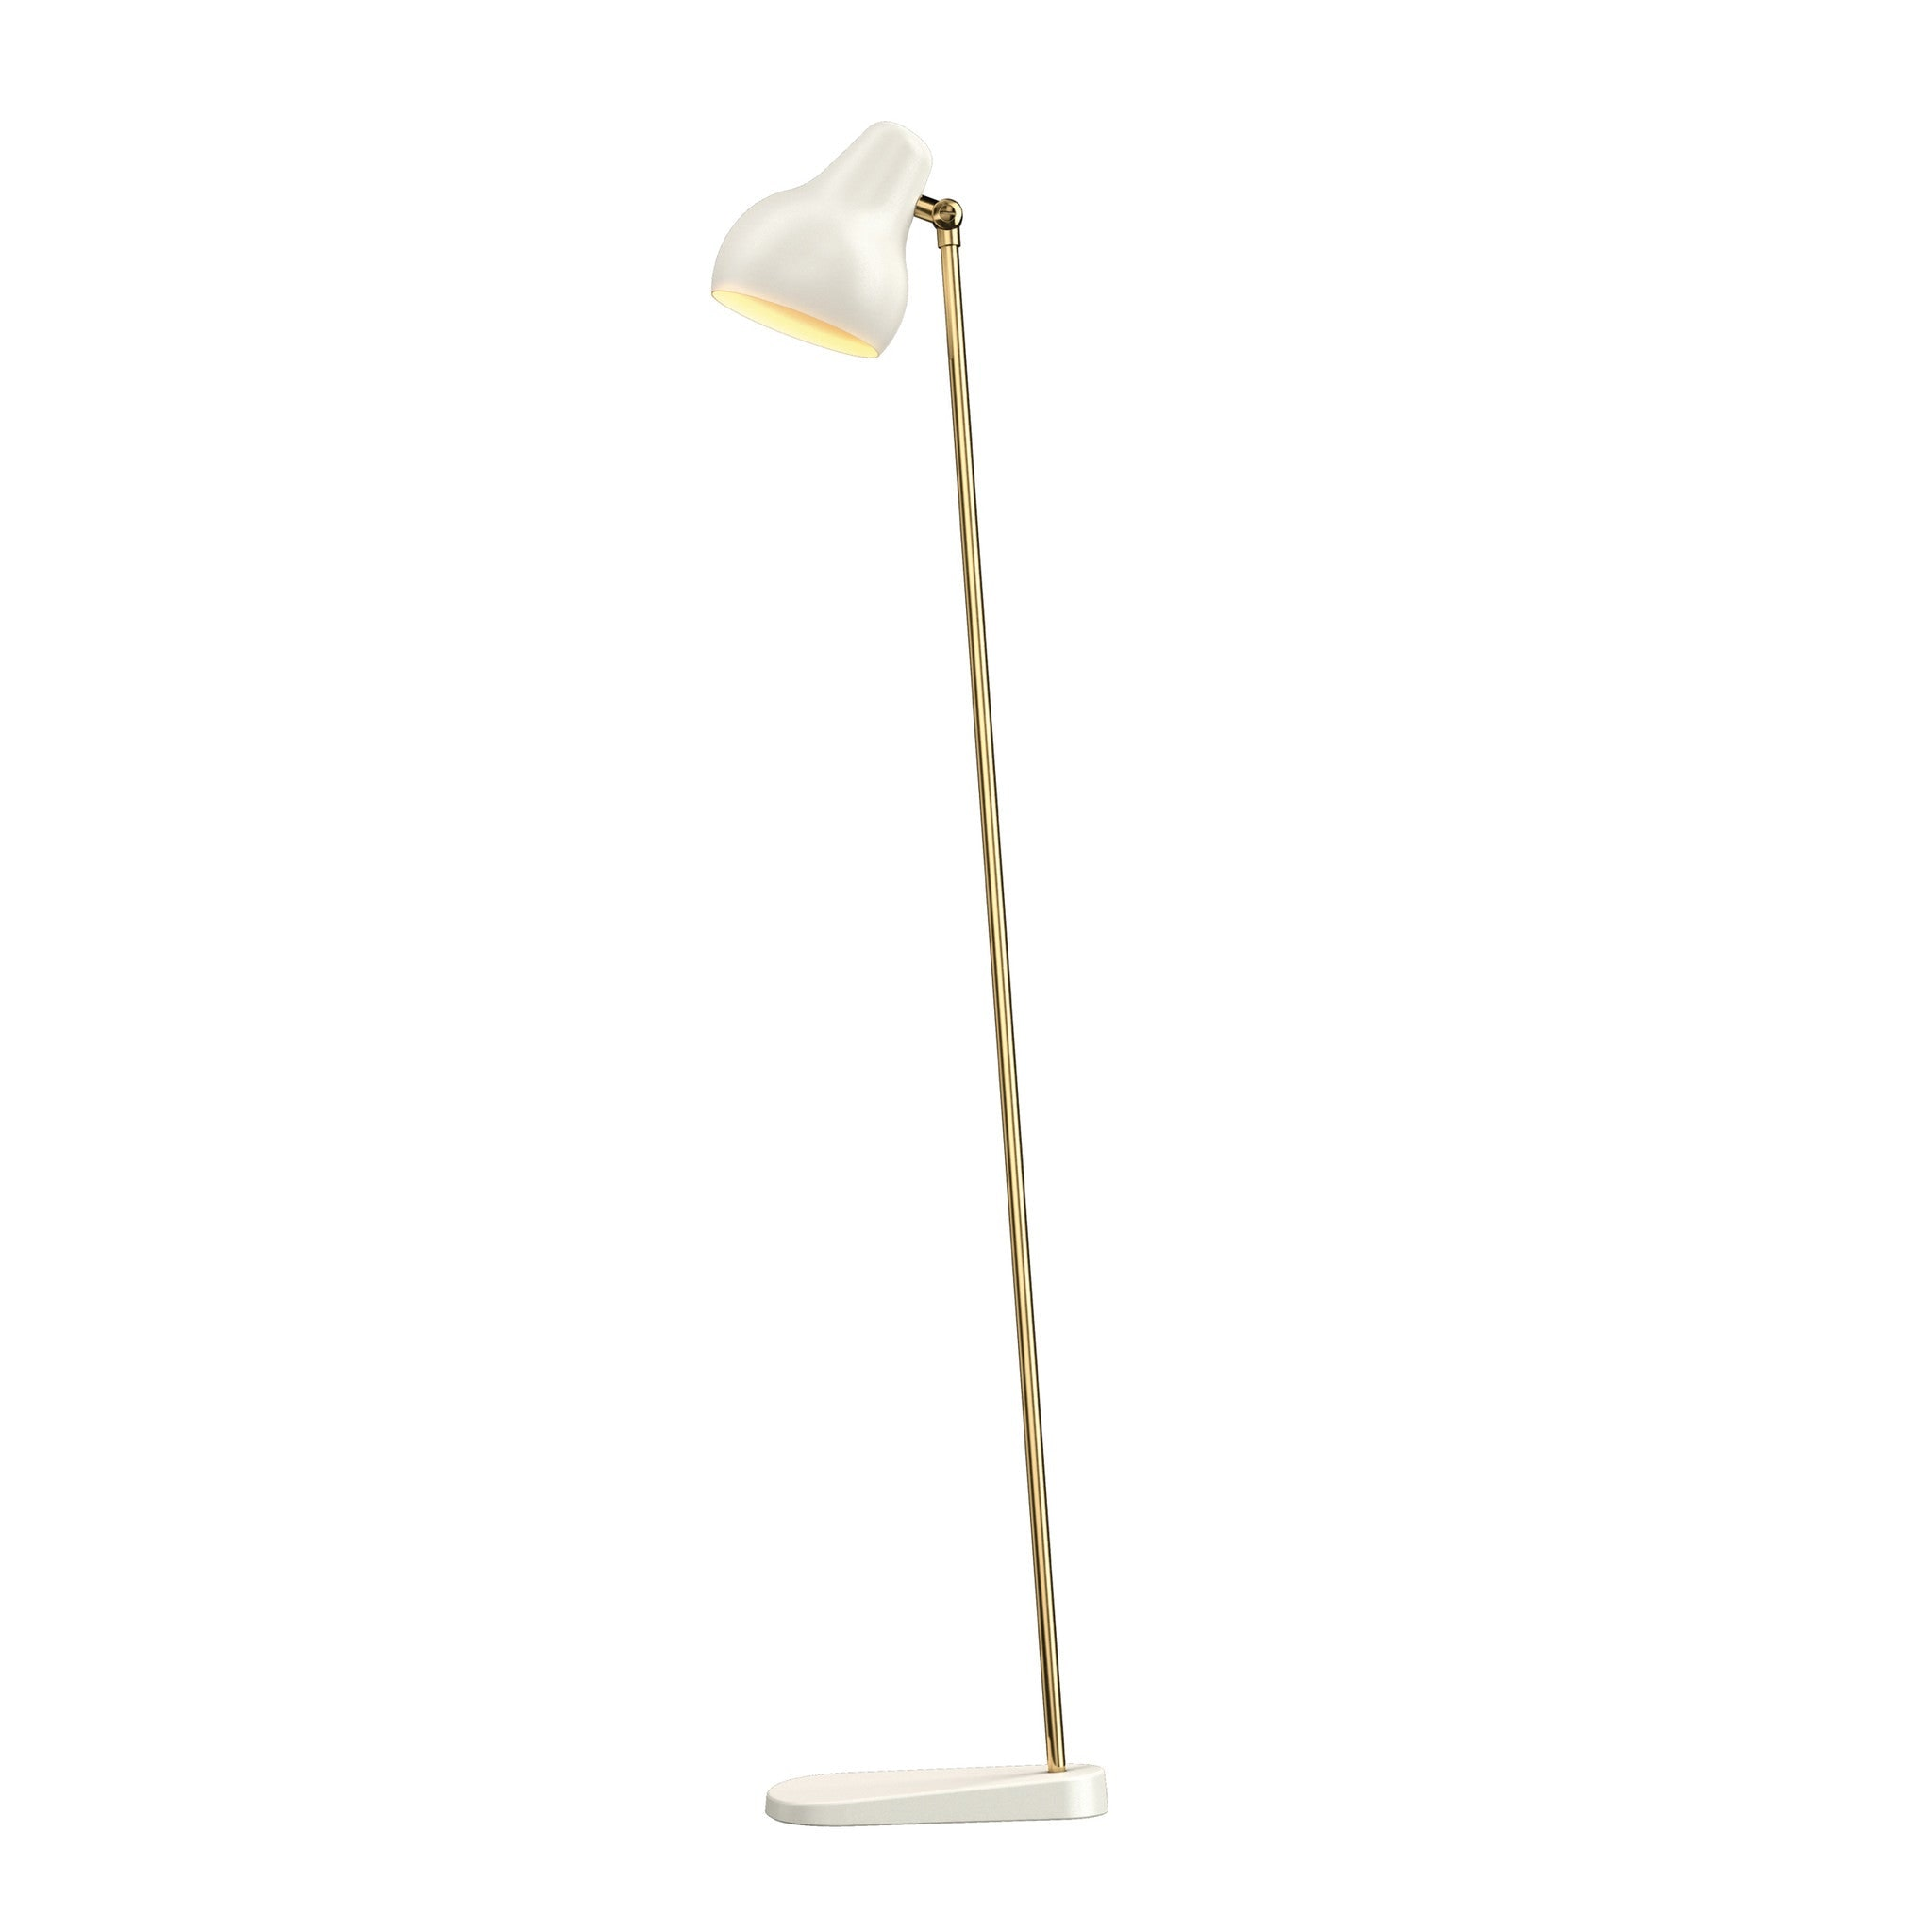 VL38 Floor Lamp White by Louis Poulsen